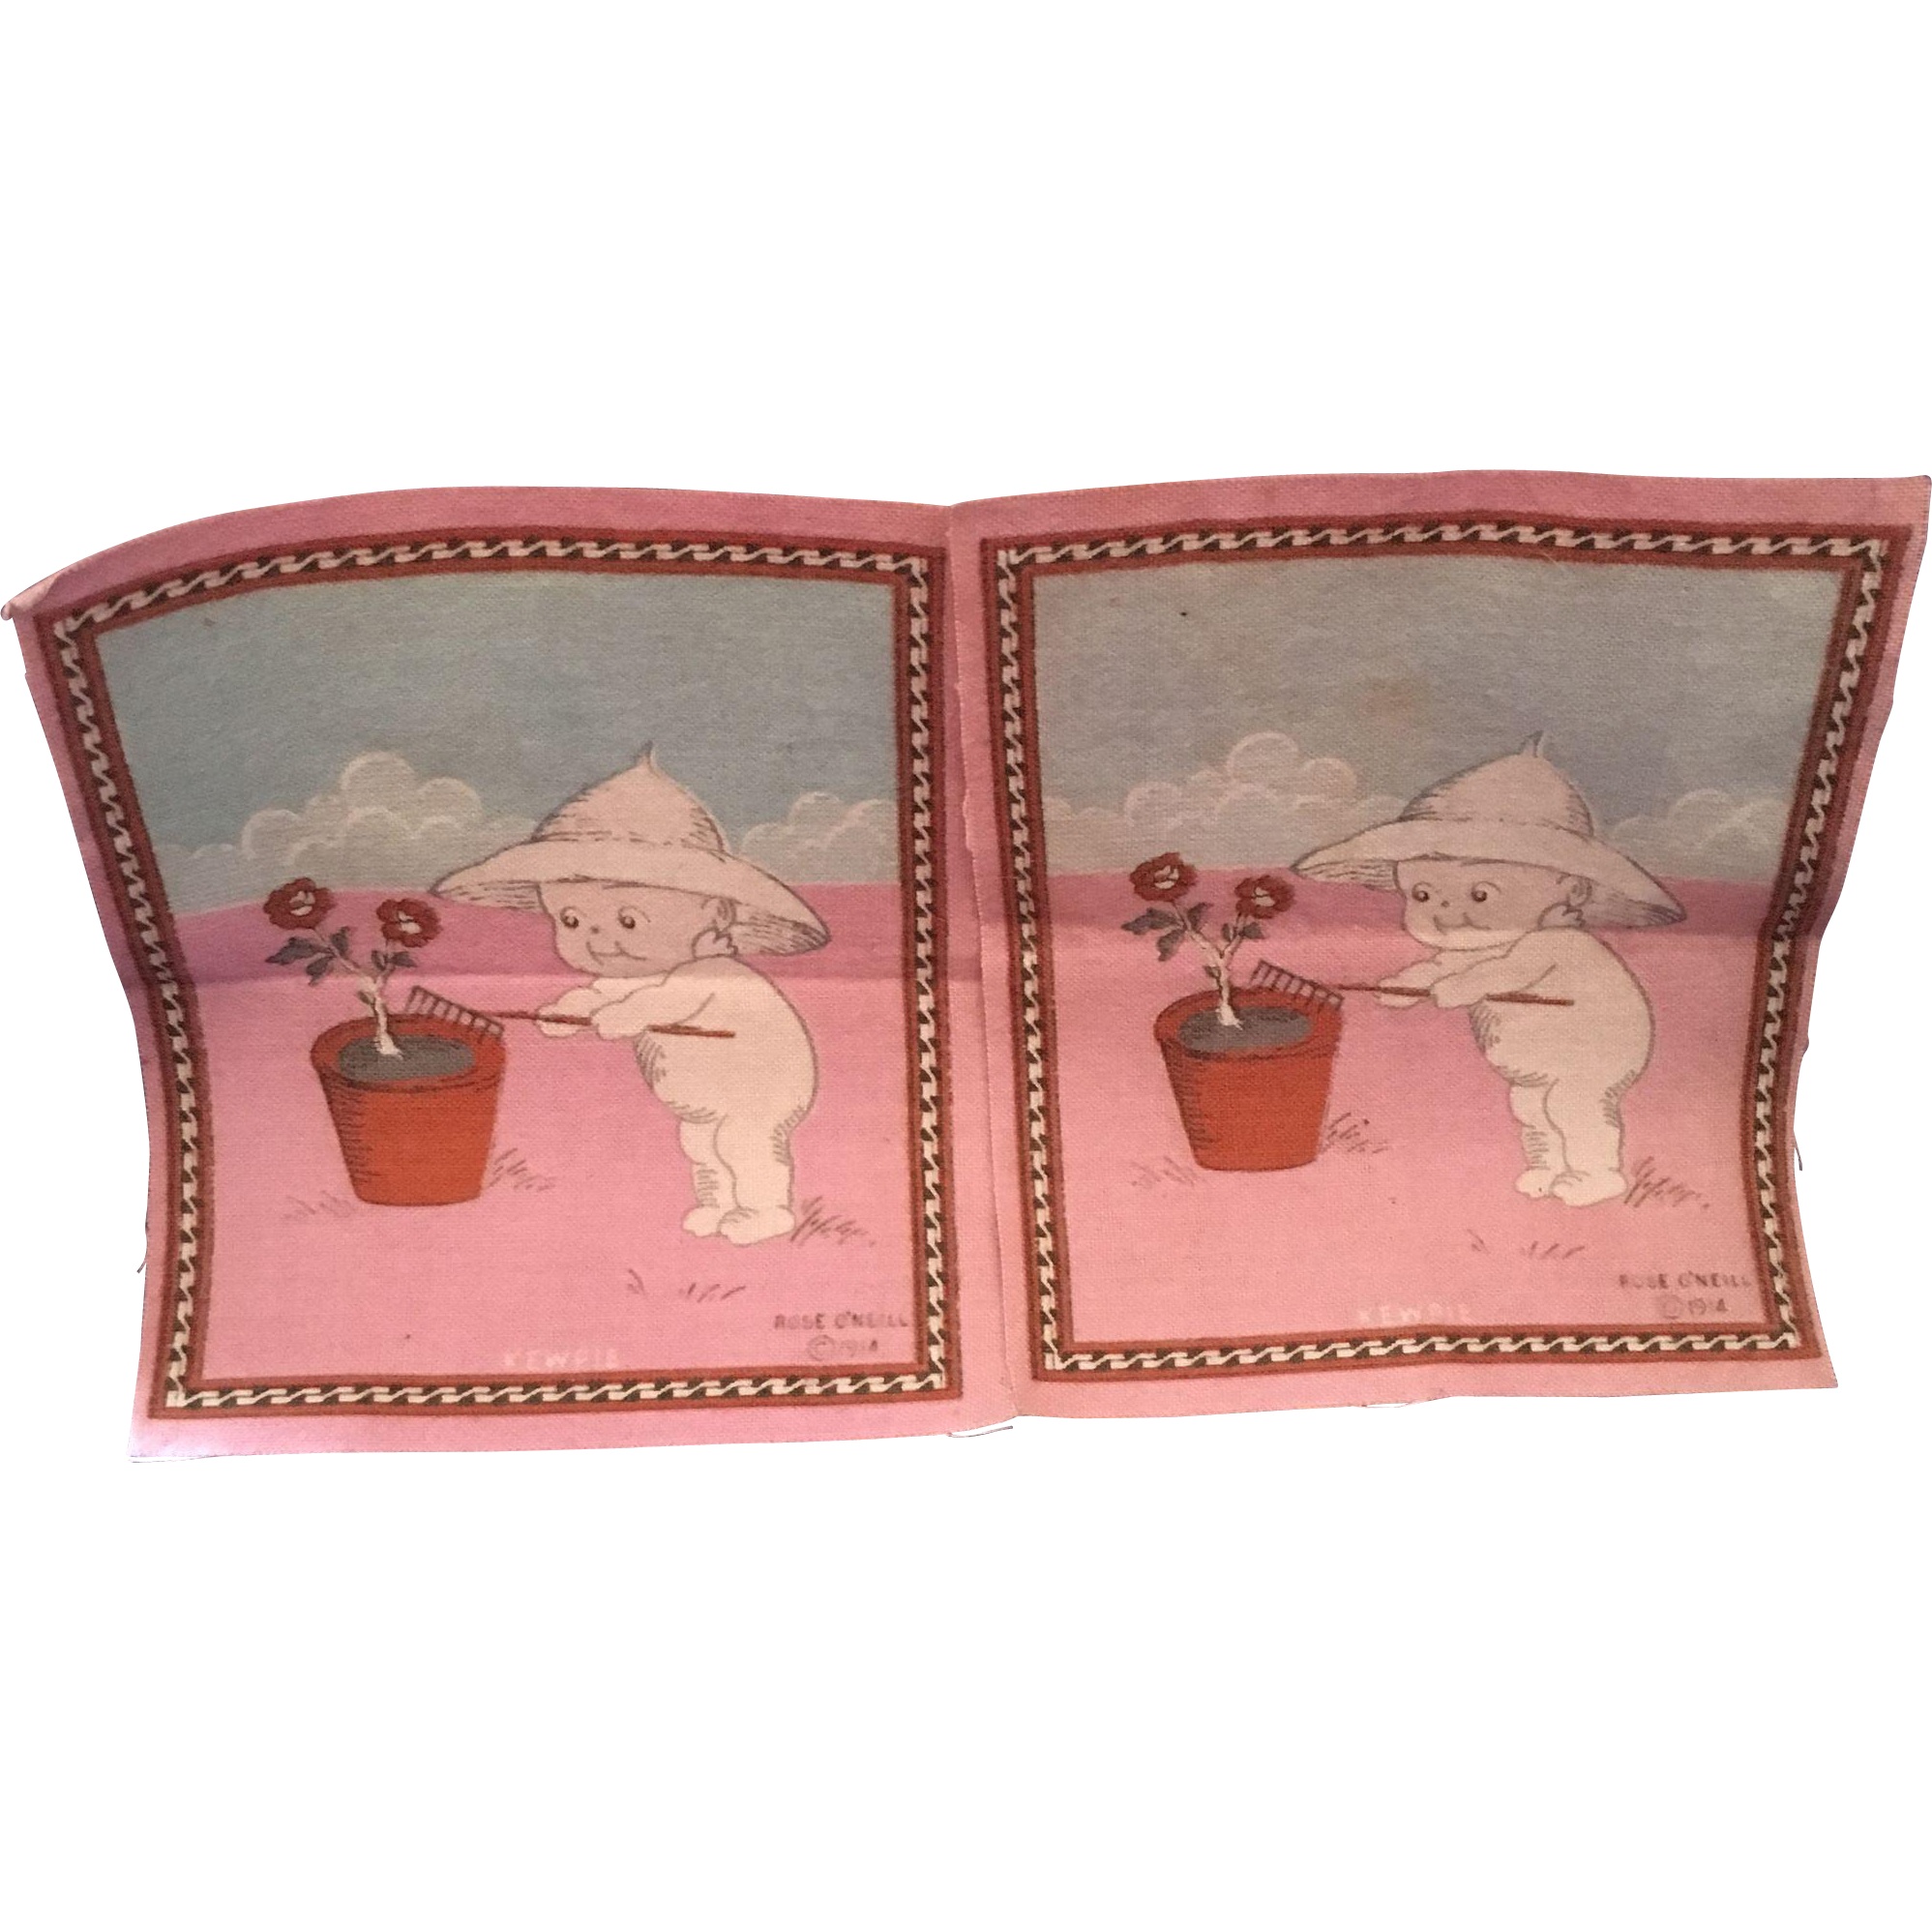 Kewpies Gardening Cigar Felt Cloths